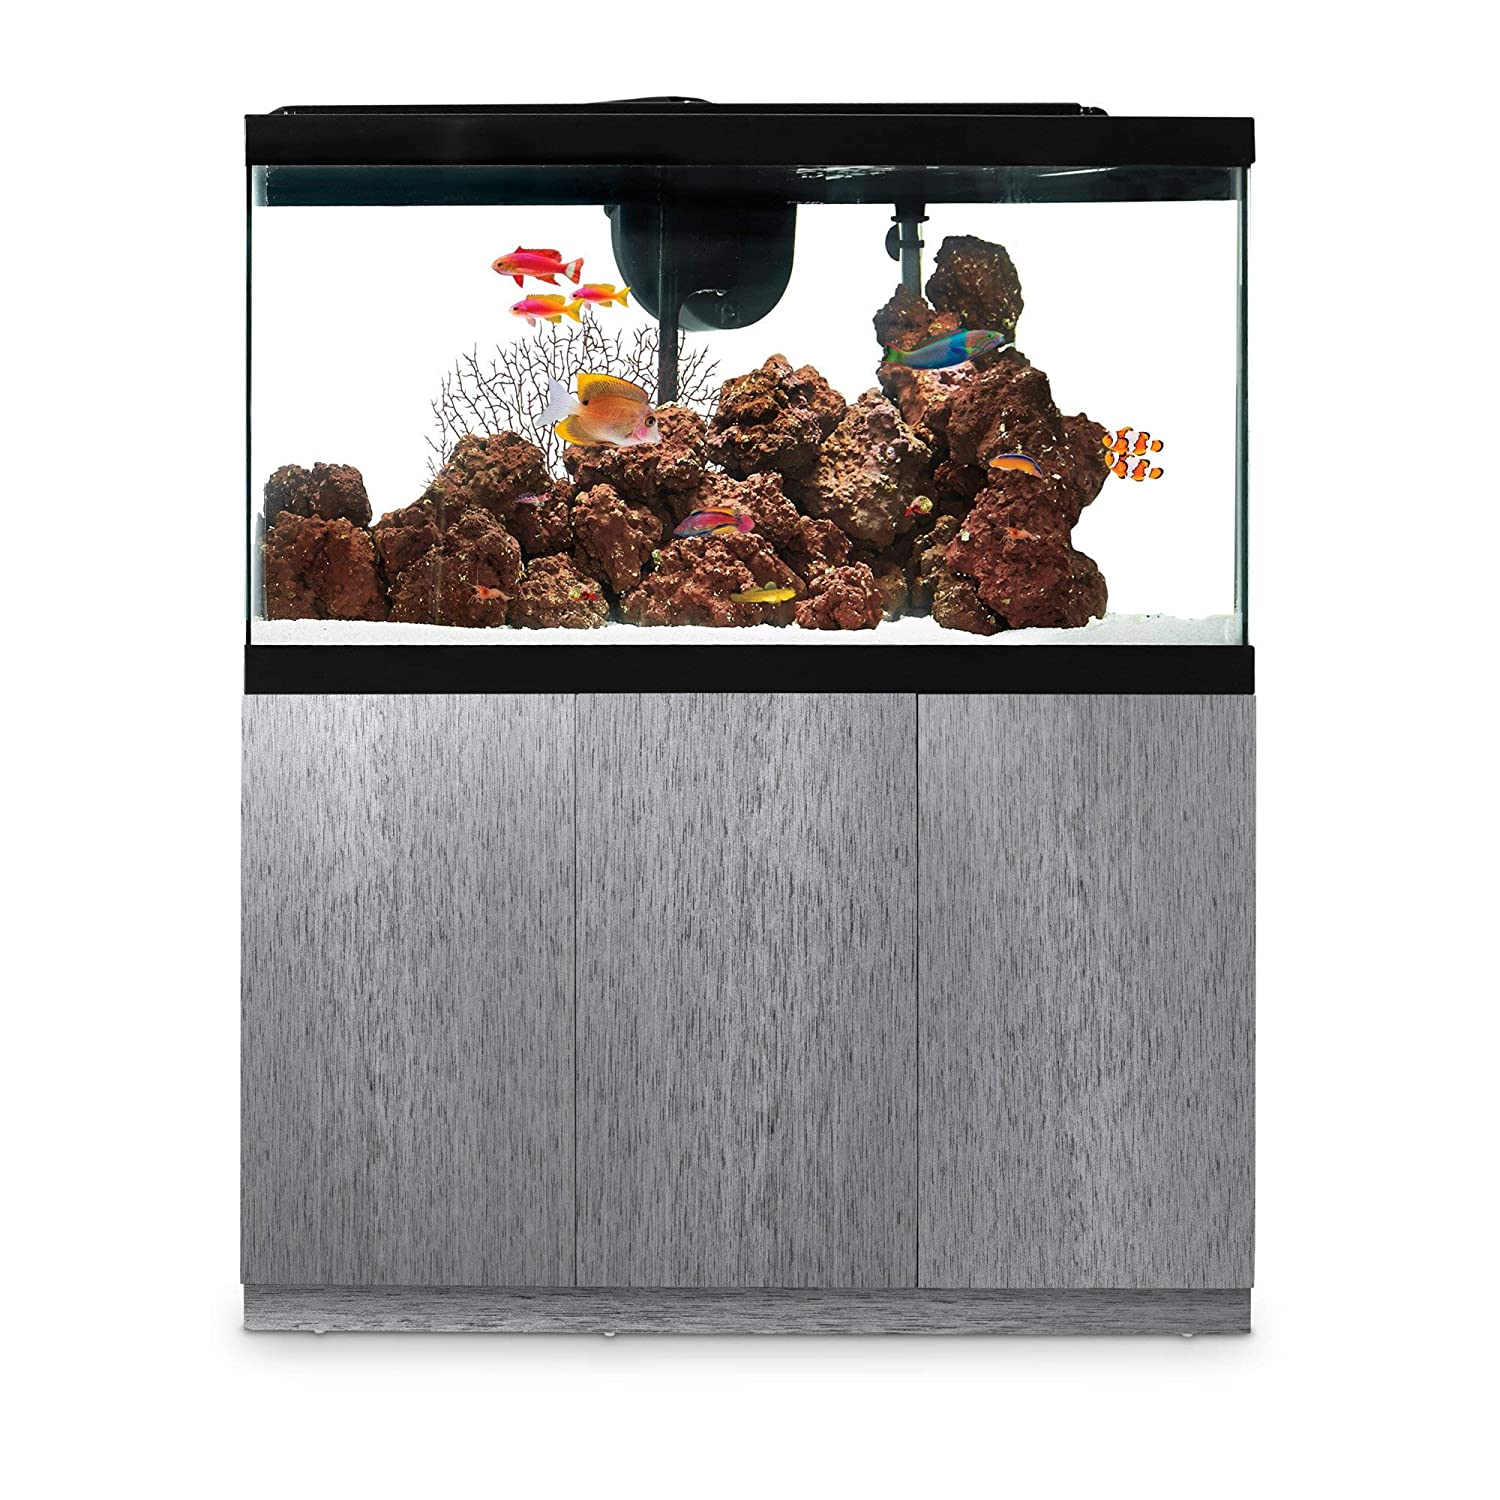 Imagitarium Brushed Steel Look Fish Tank Stand, Up to 55 Gal, 14.25 in